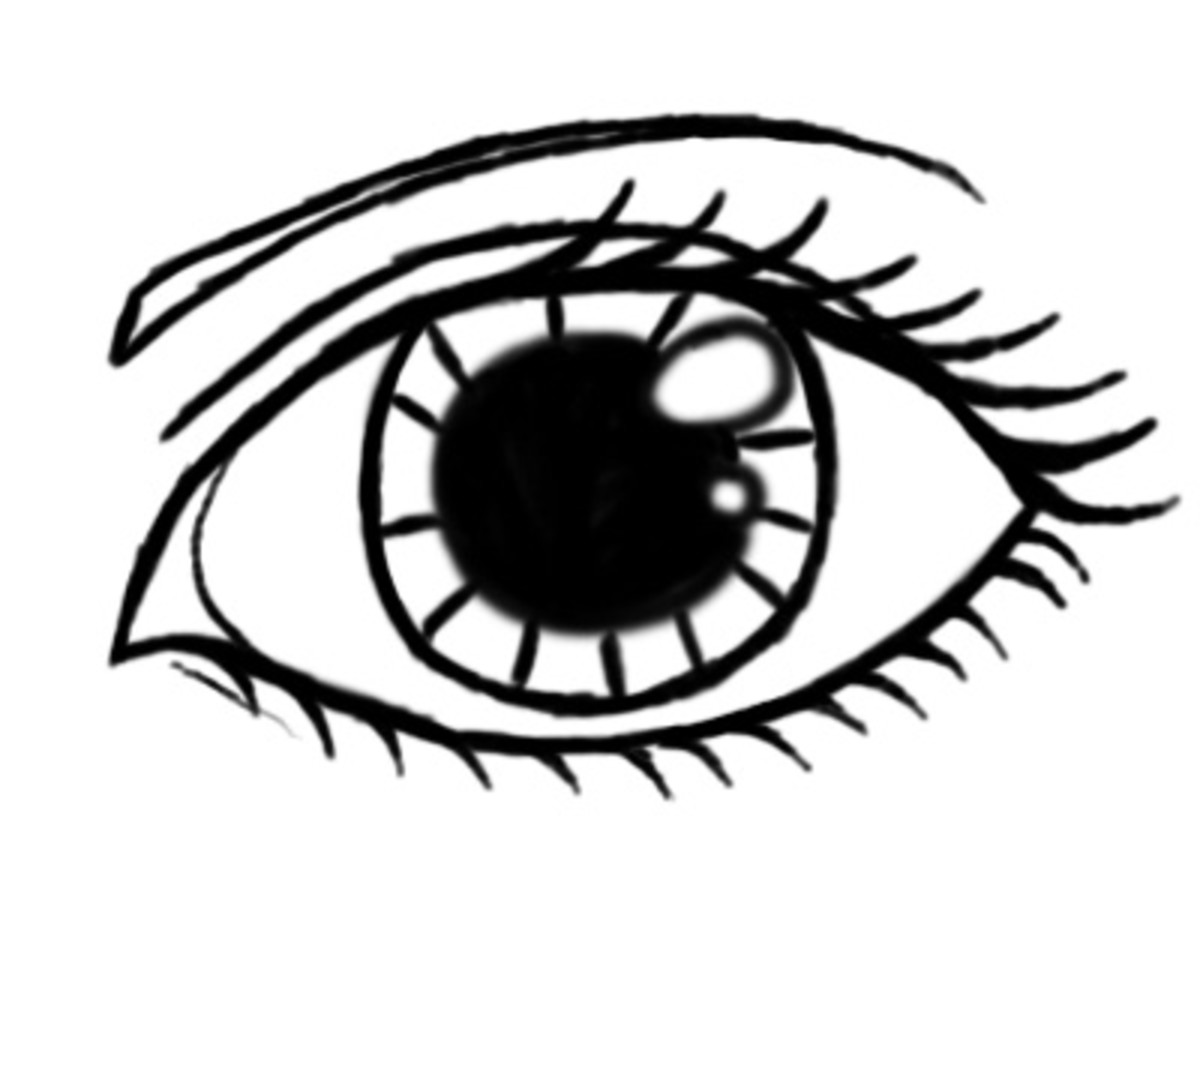 draw in a thin eyebrow at the top of the eye and you're done! There you have it folks, a female eye! I hope this was helpful to someone out there.